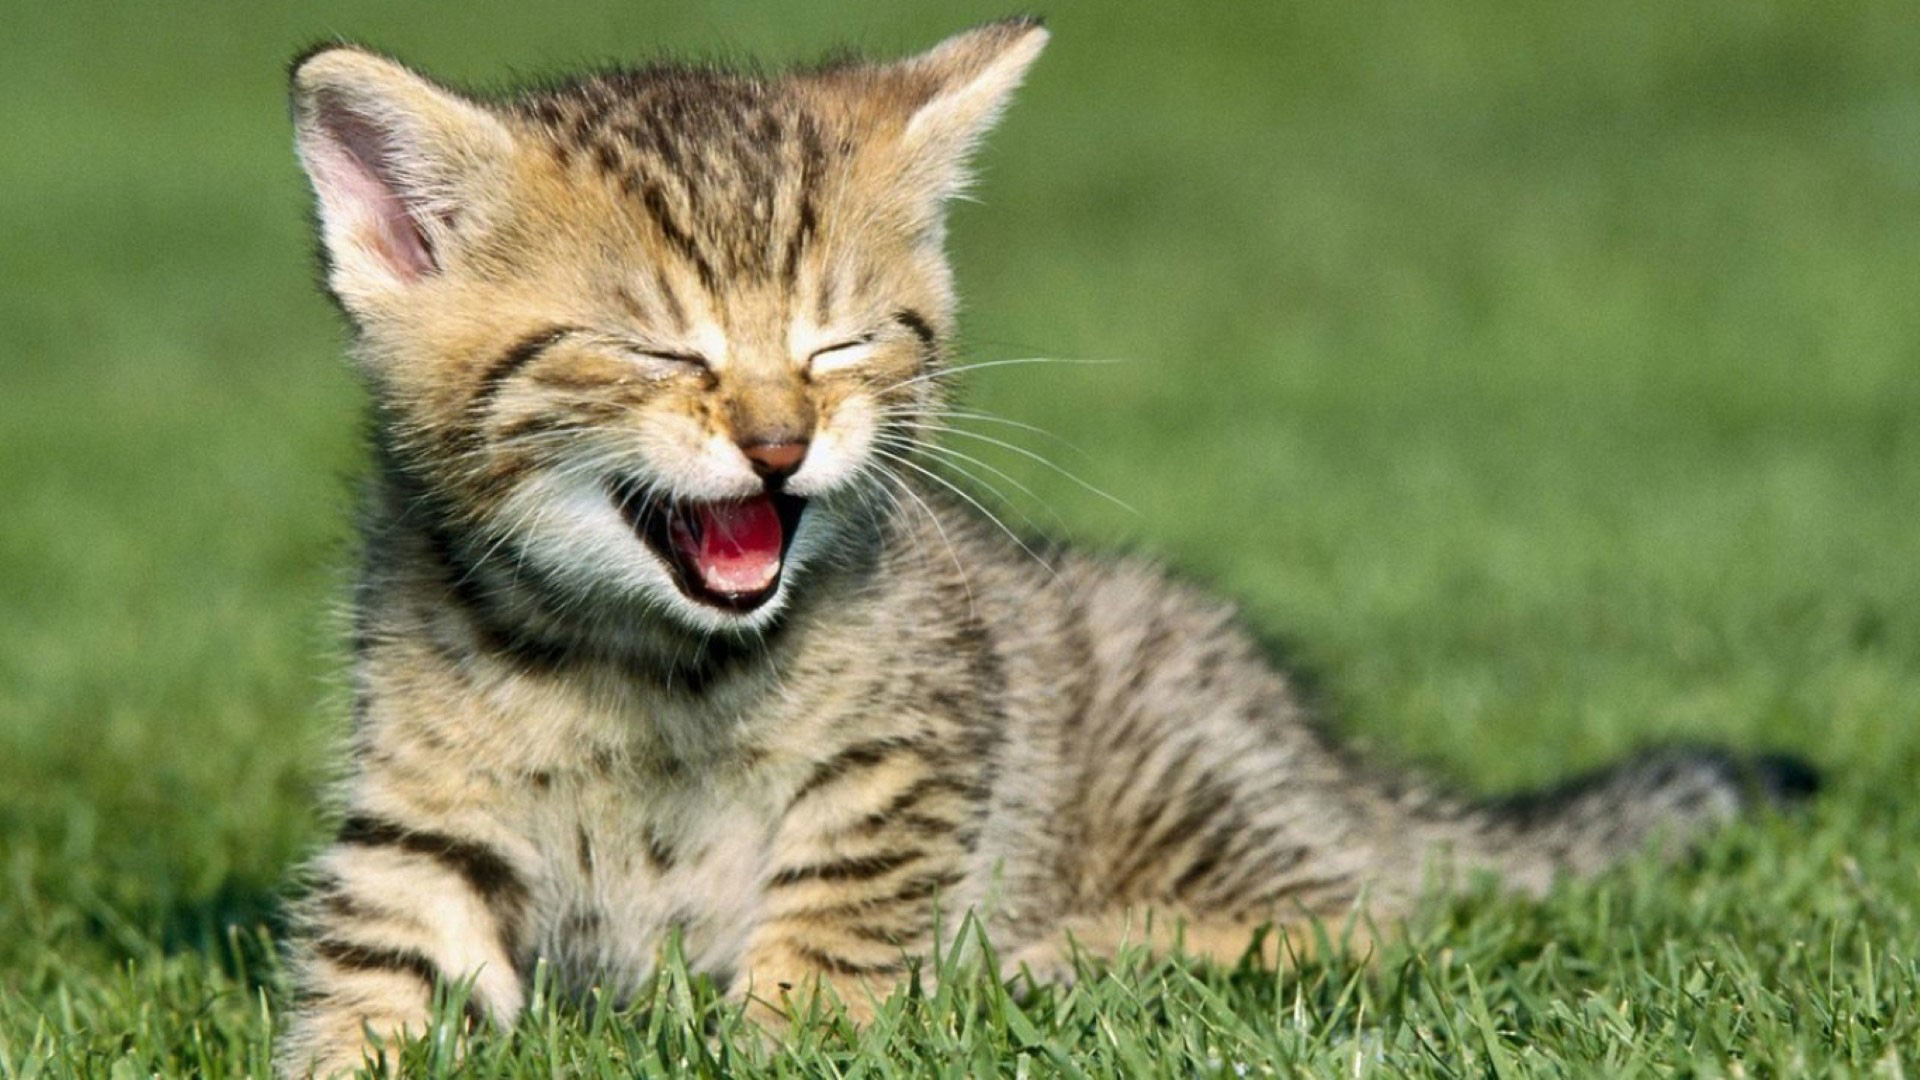 1920x1080 hd pics photos best funny cat laughing grass garden hd quality desktop  background wallpaper